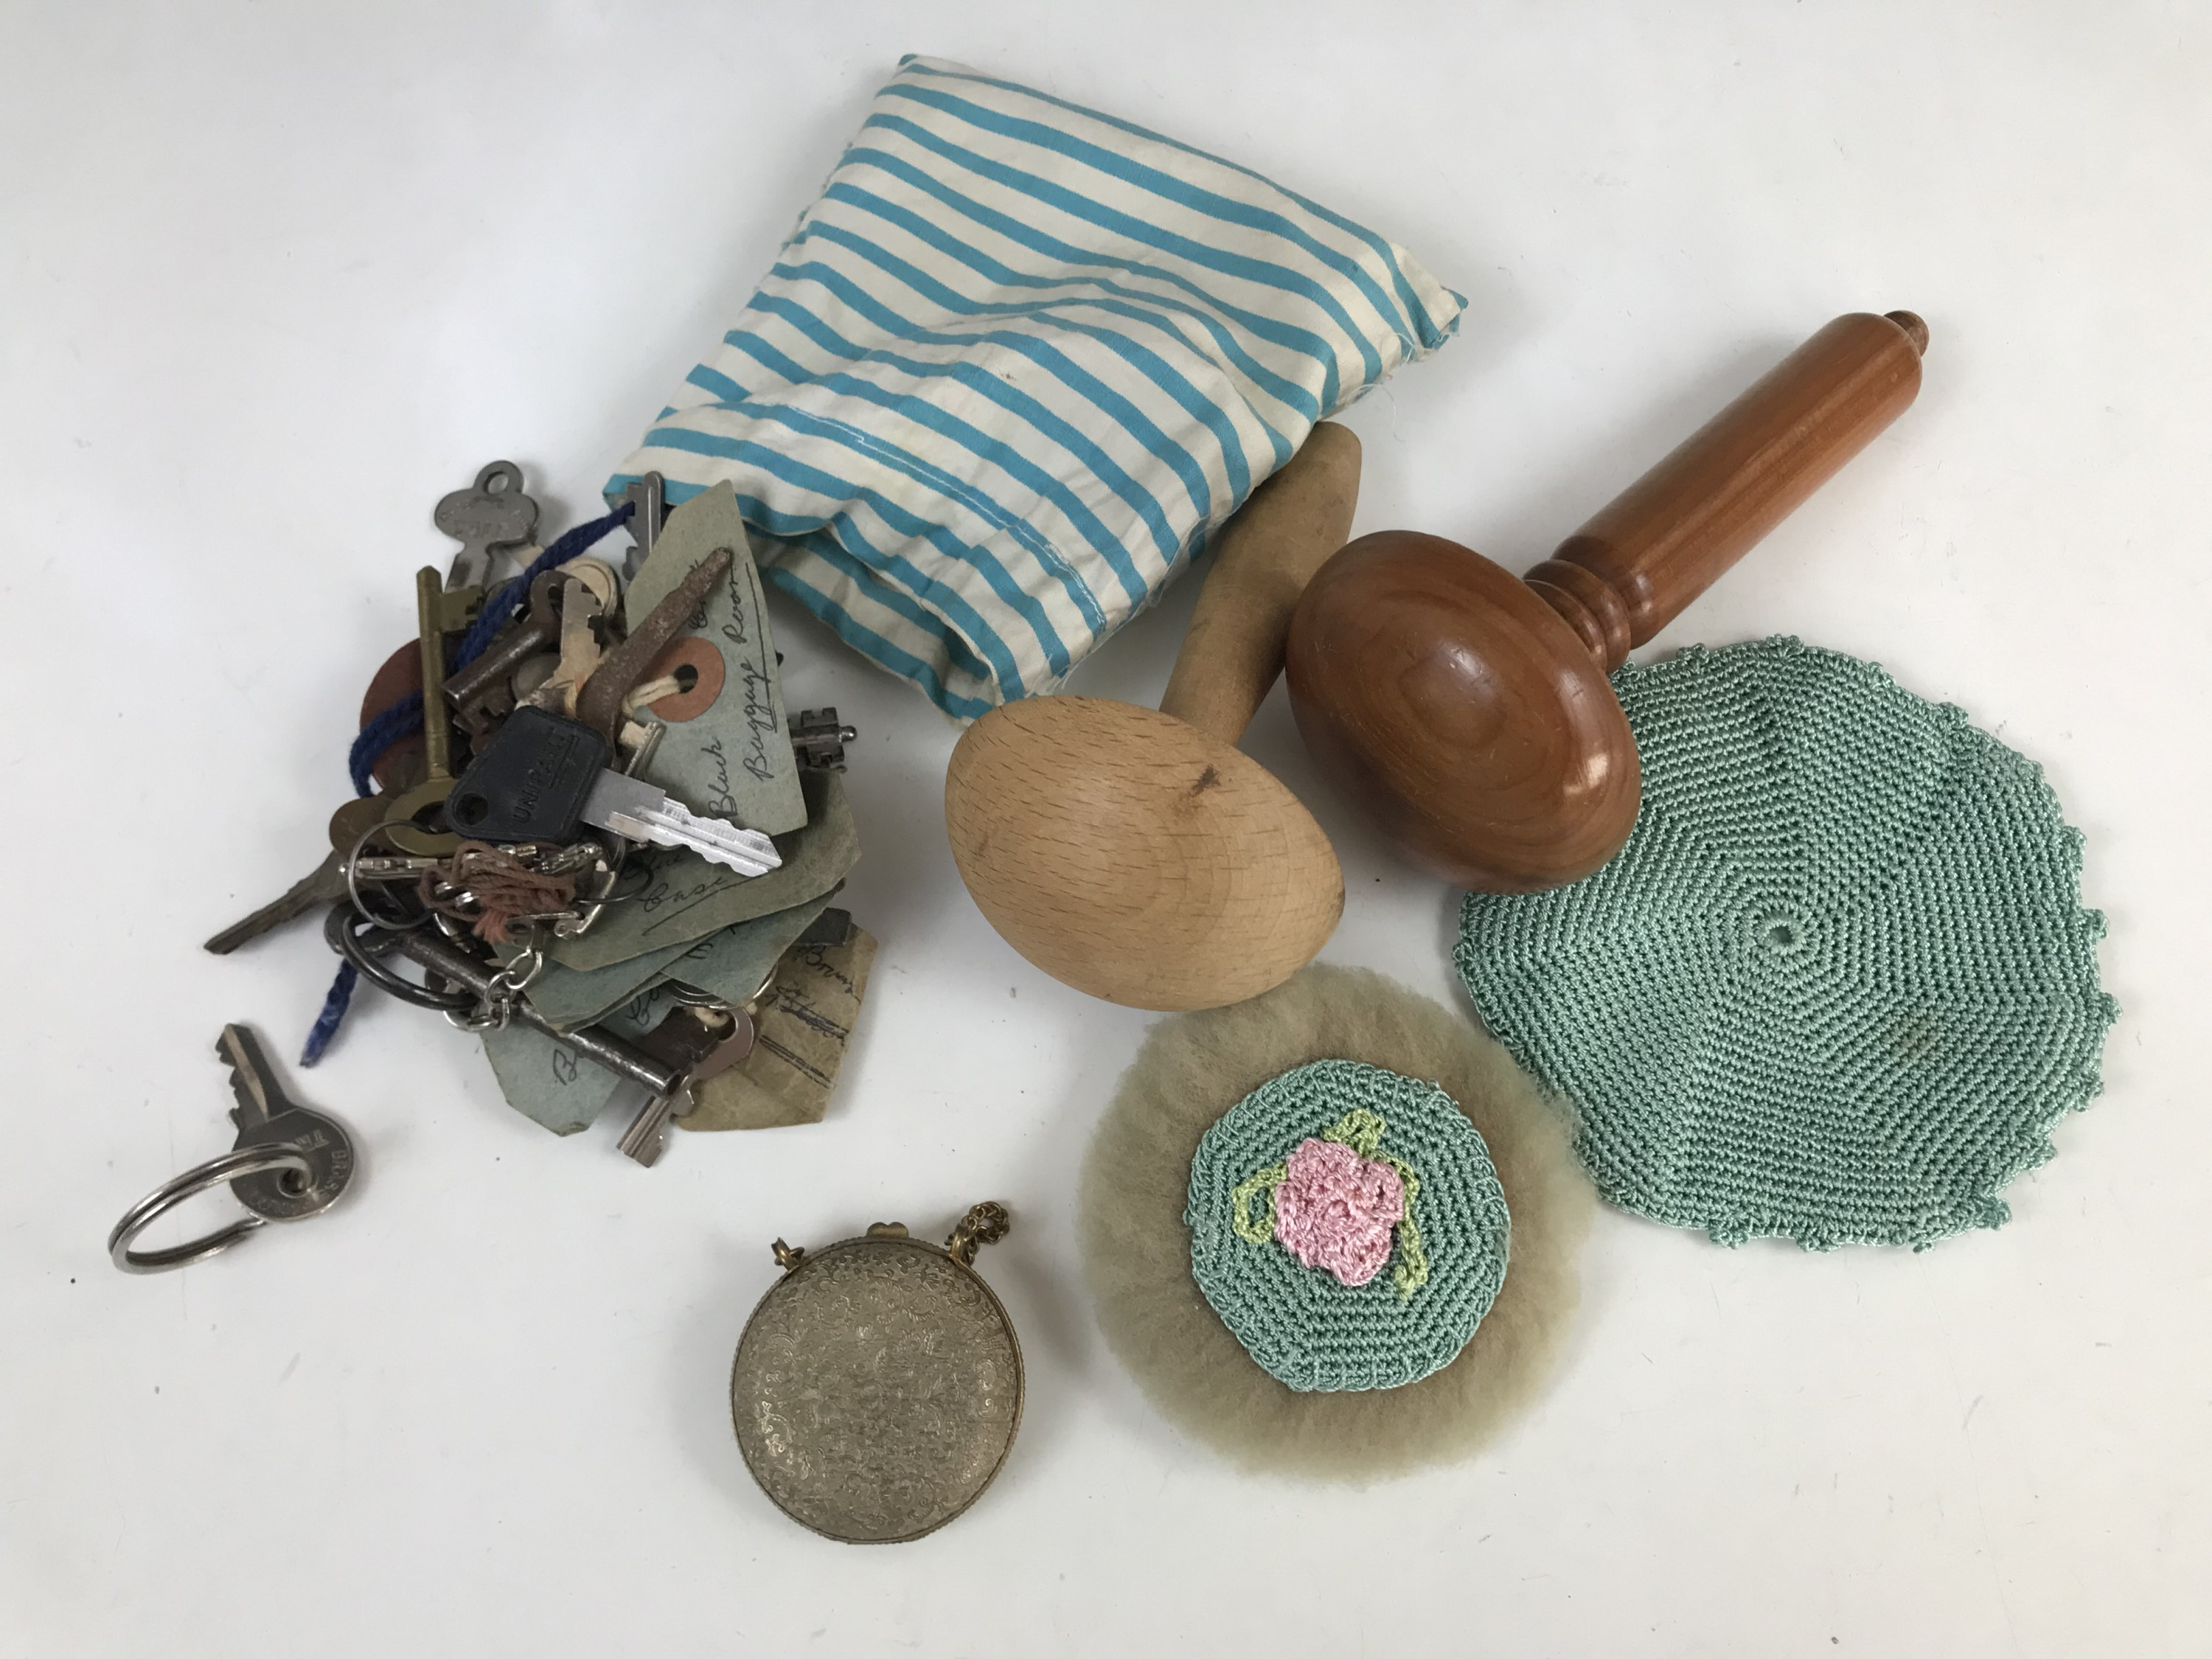 Lot 30 - Collectors' items including a hand-crocheted powder puff, a coin purse, two darning mushrooms, and a